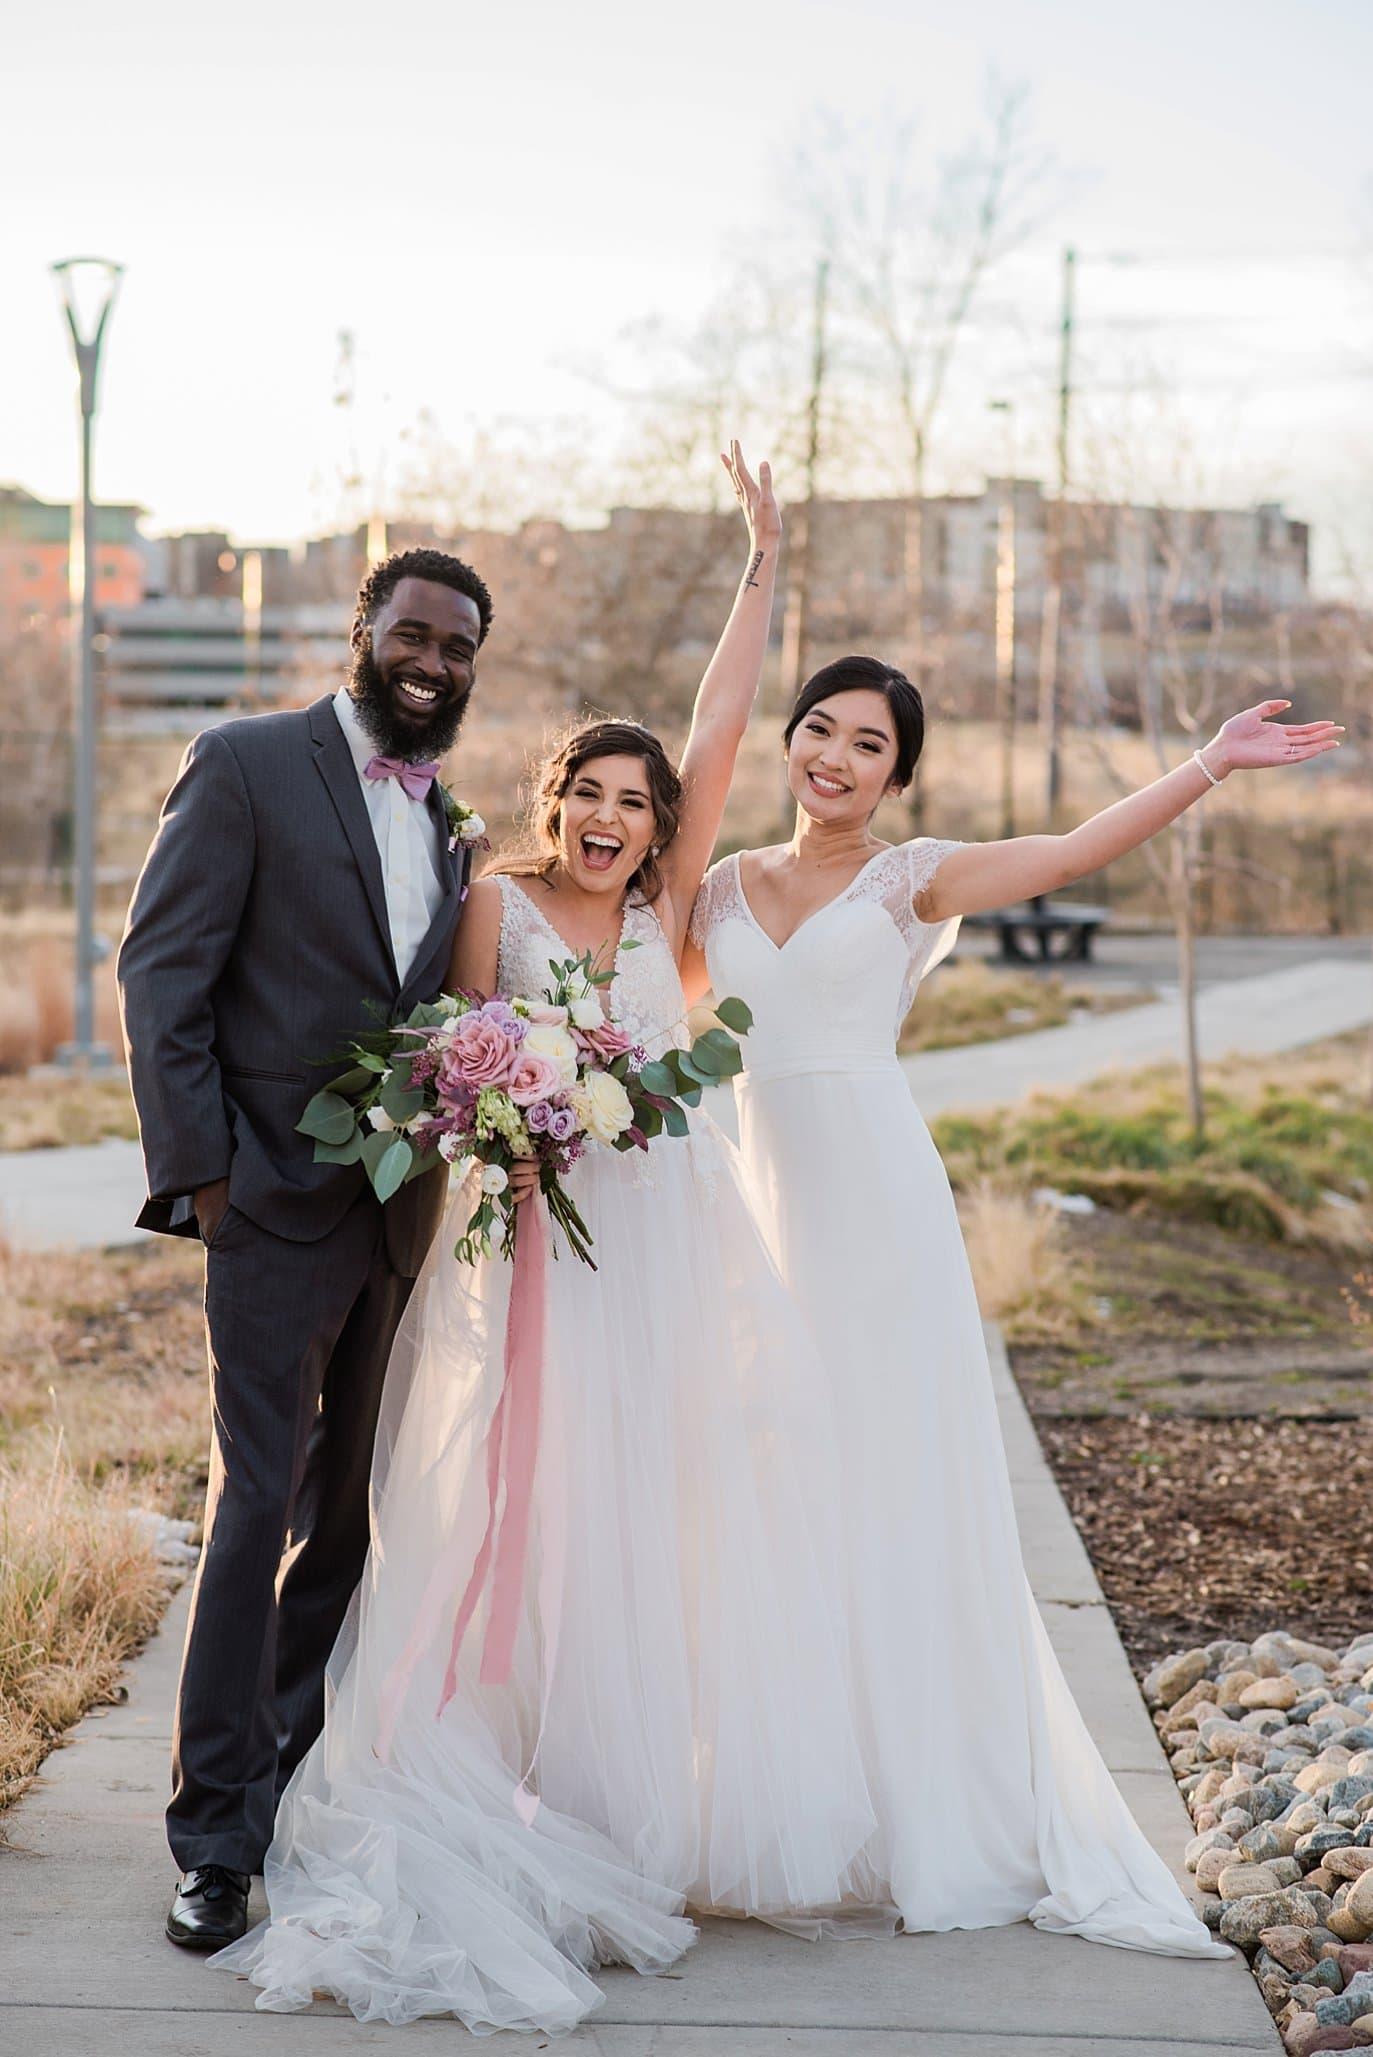 models posing after a successful styled shoot at Shyft Denver wedding by Aurora wedding photographer Jennie Crate photographer